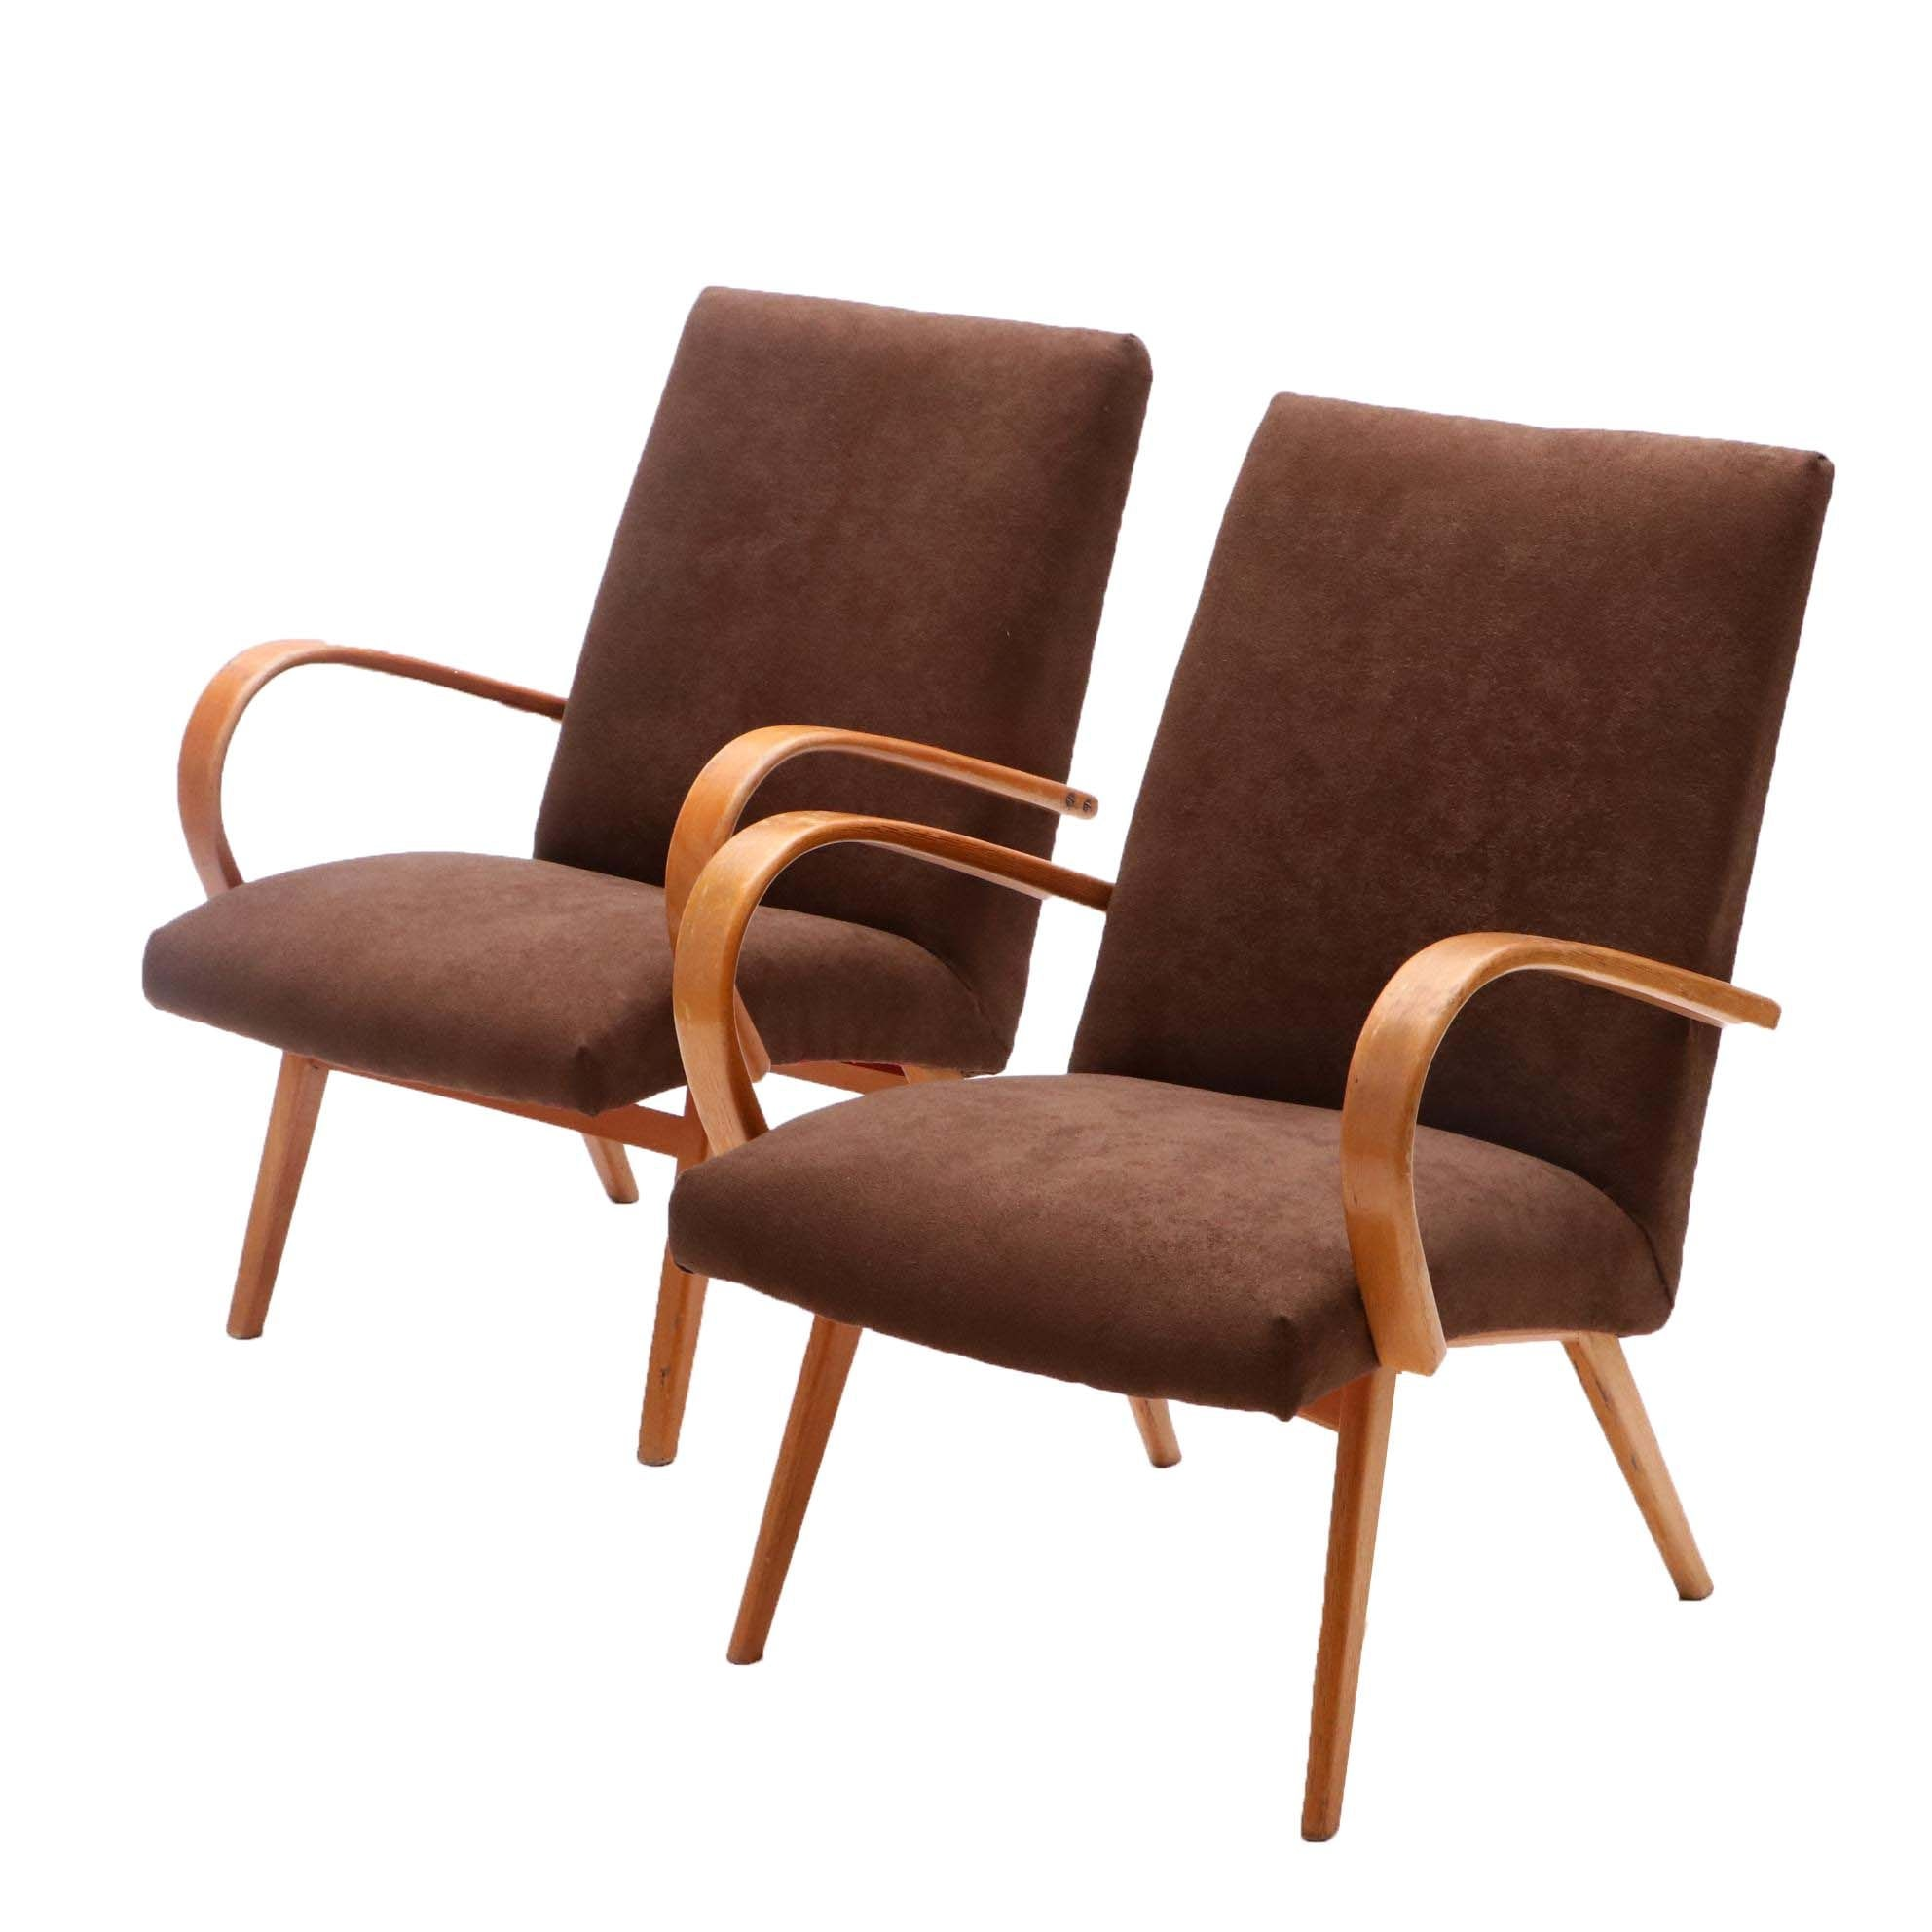 Pair of Mid Century Modern Bentwood Chairs